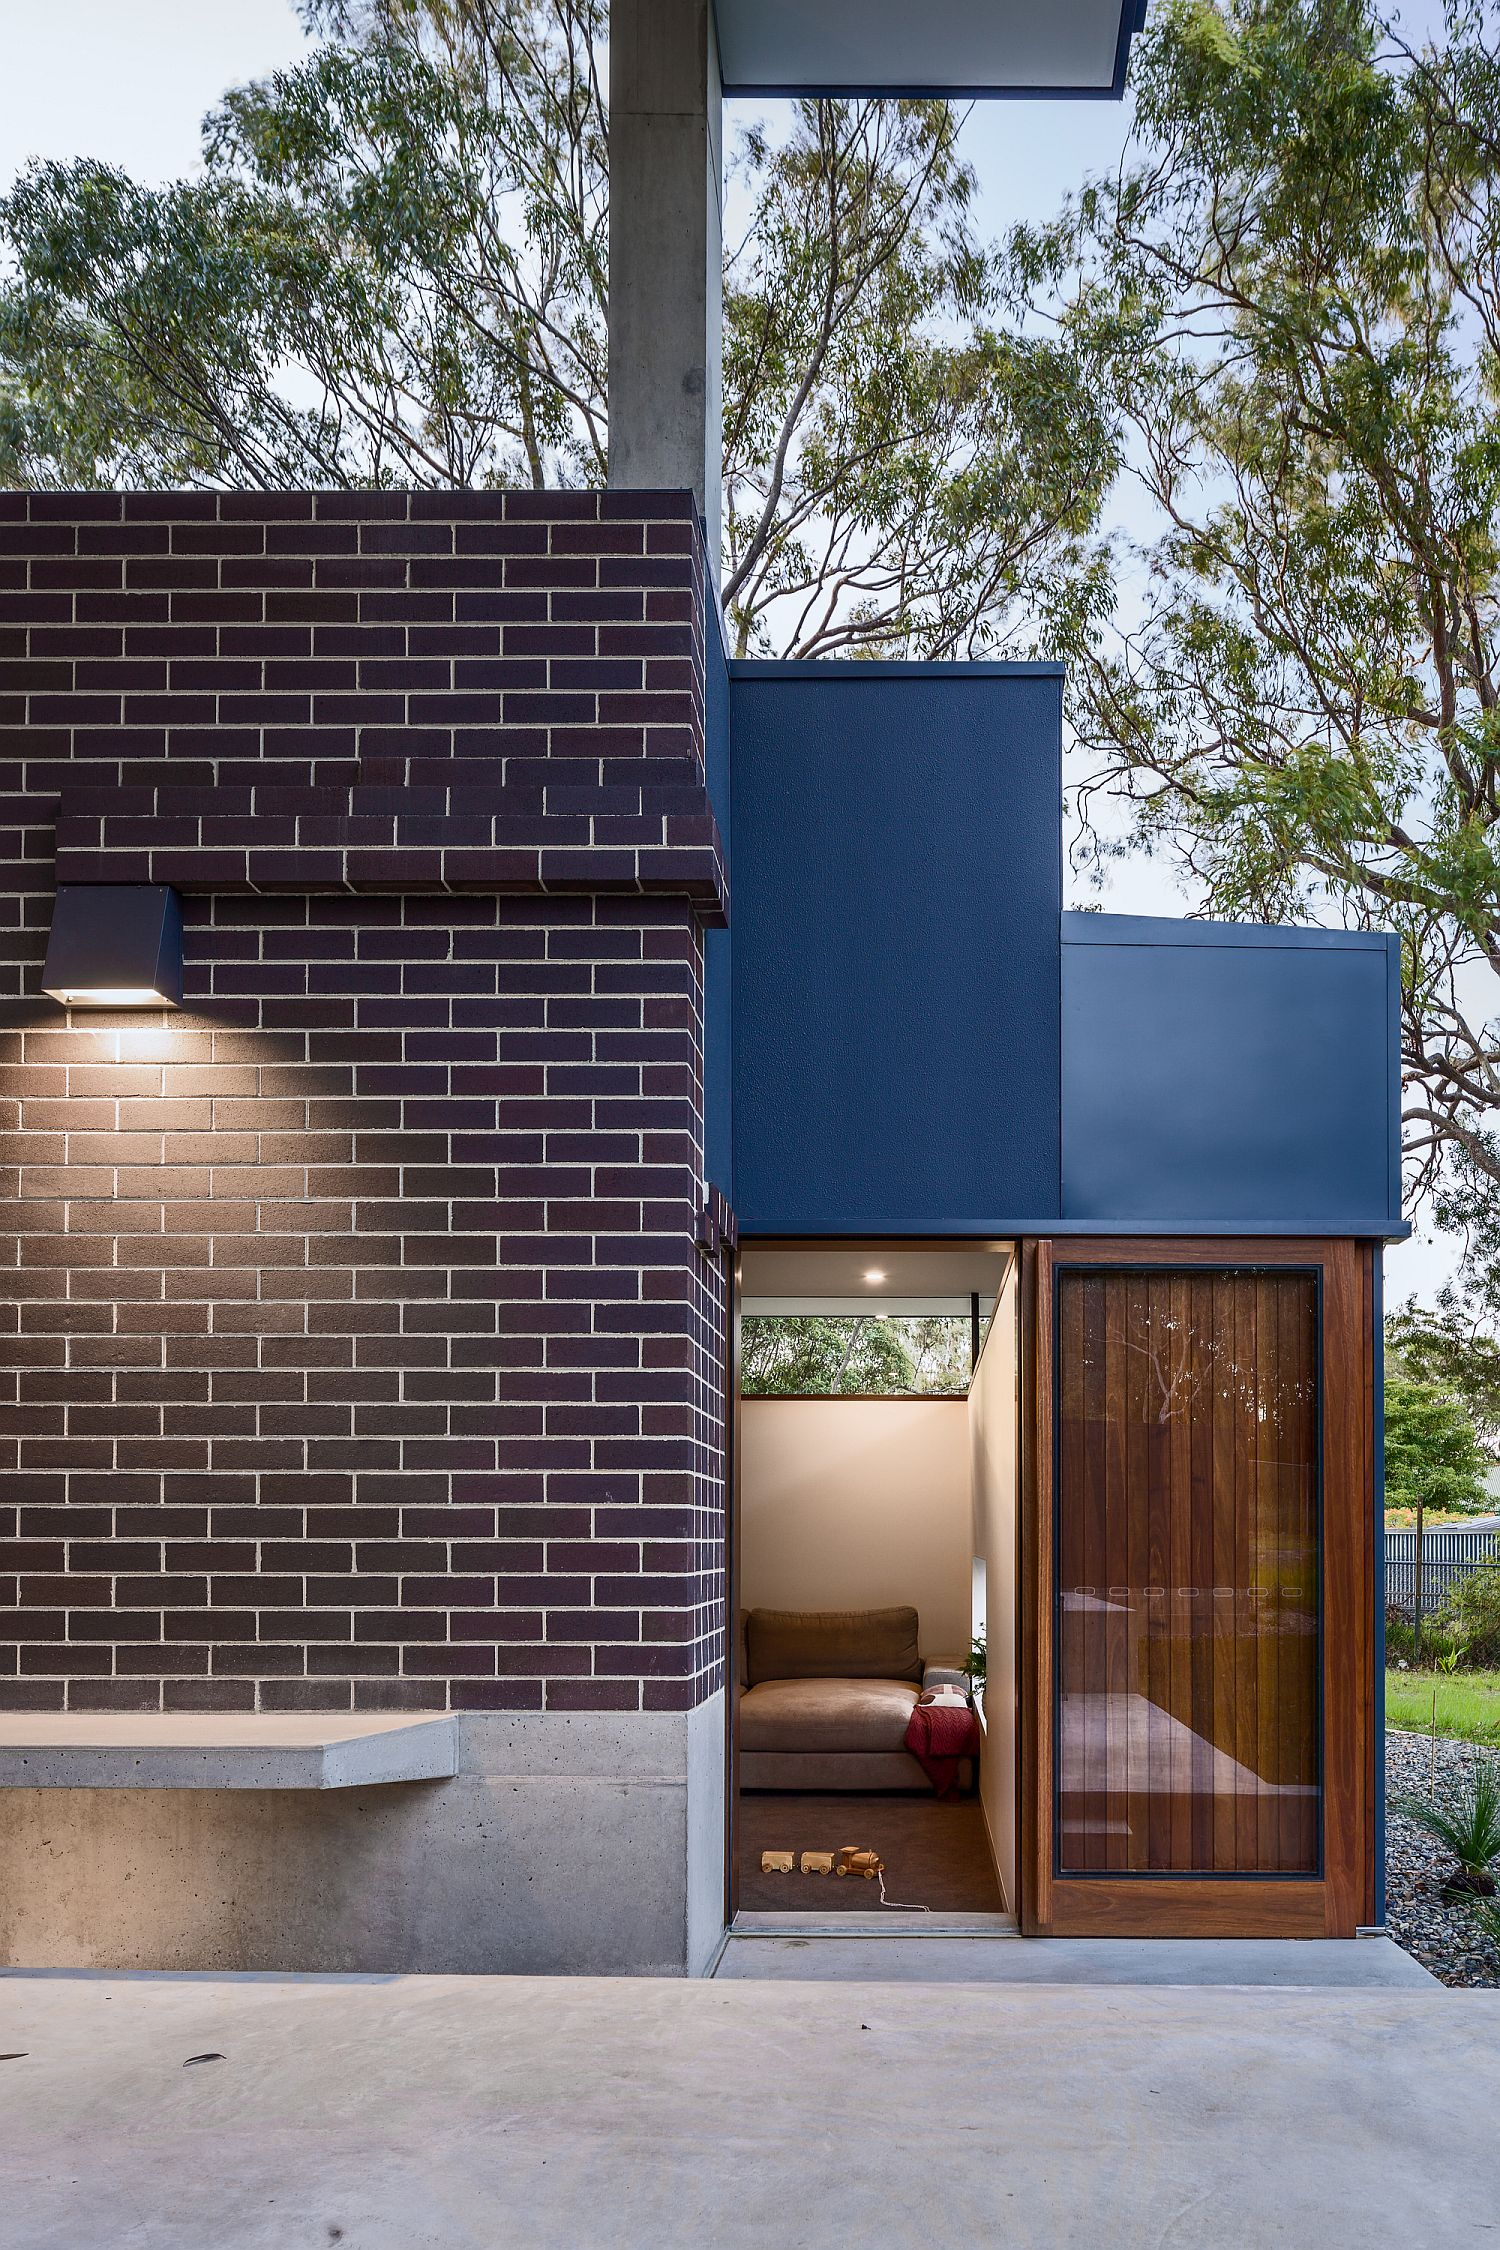 Classic and modern design influences merge inside the Brass House